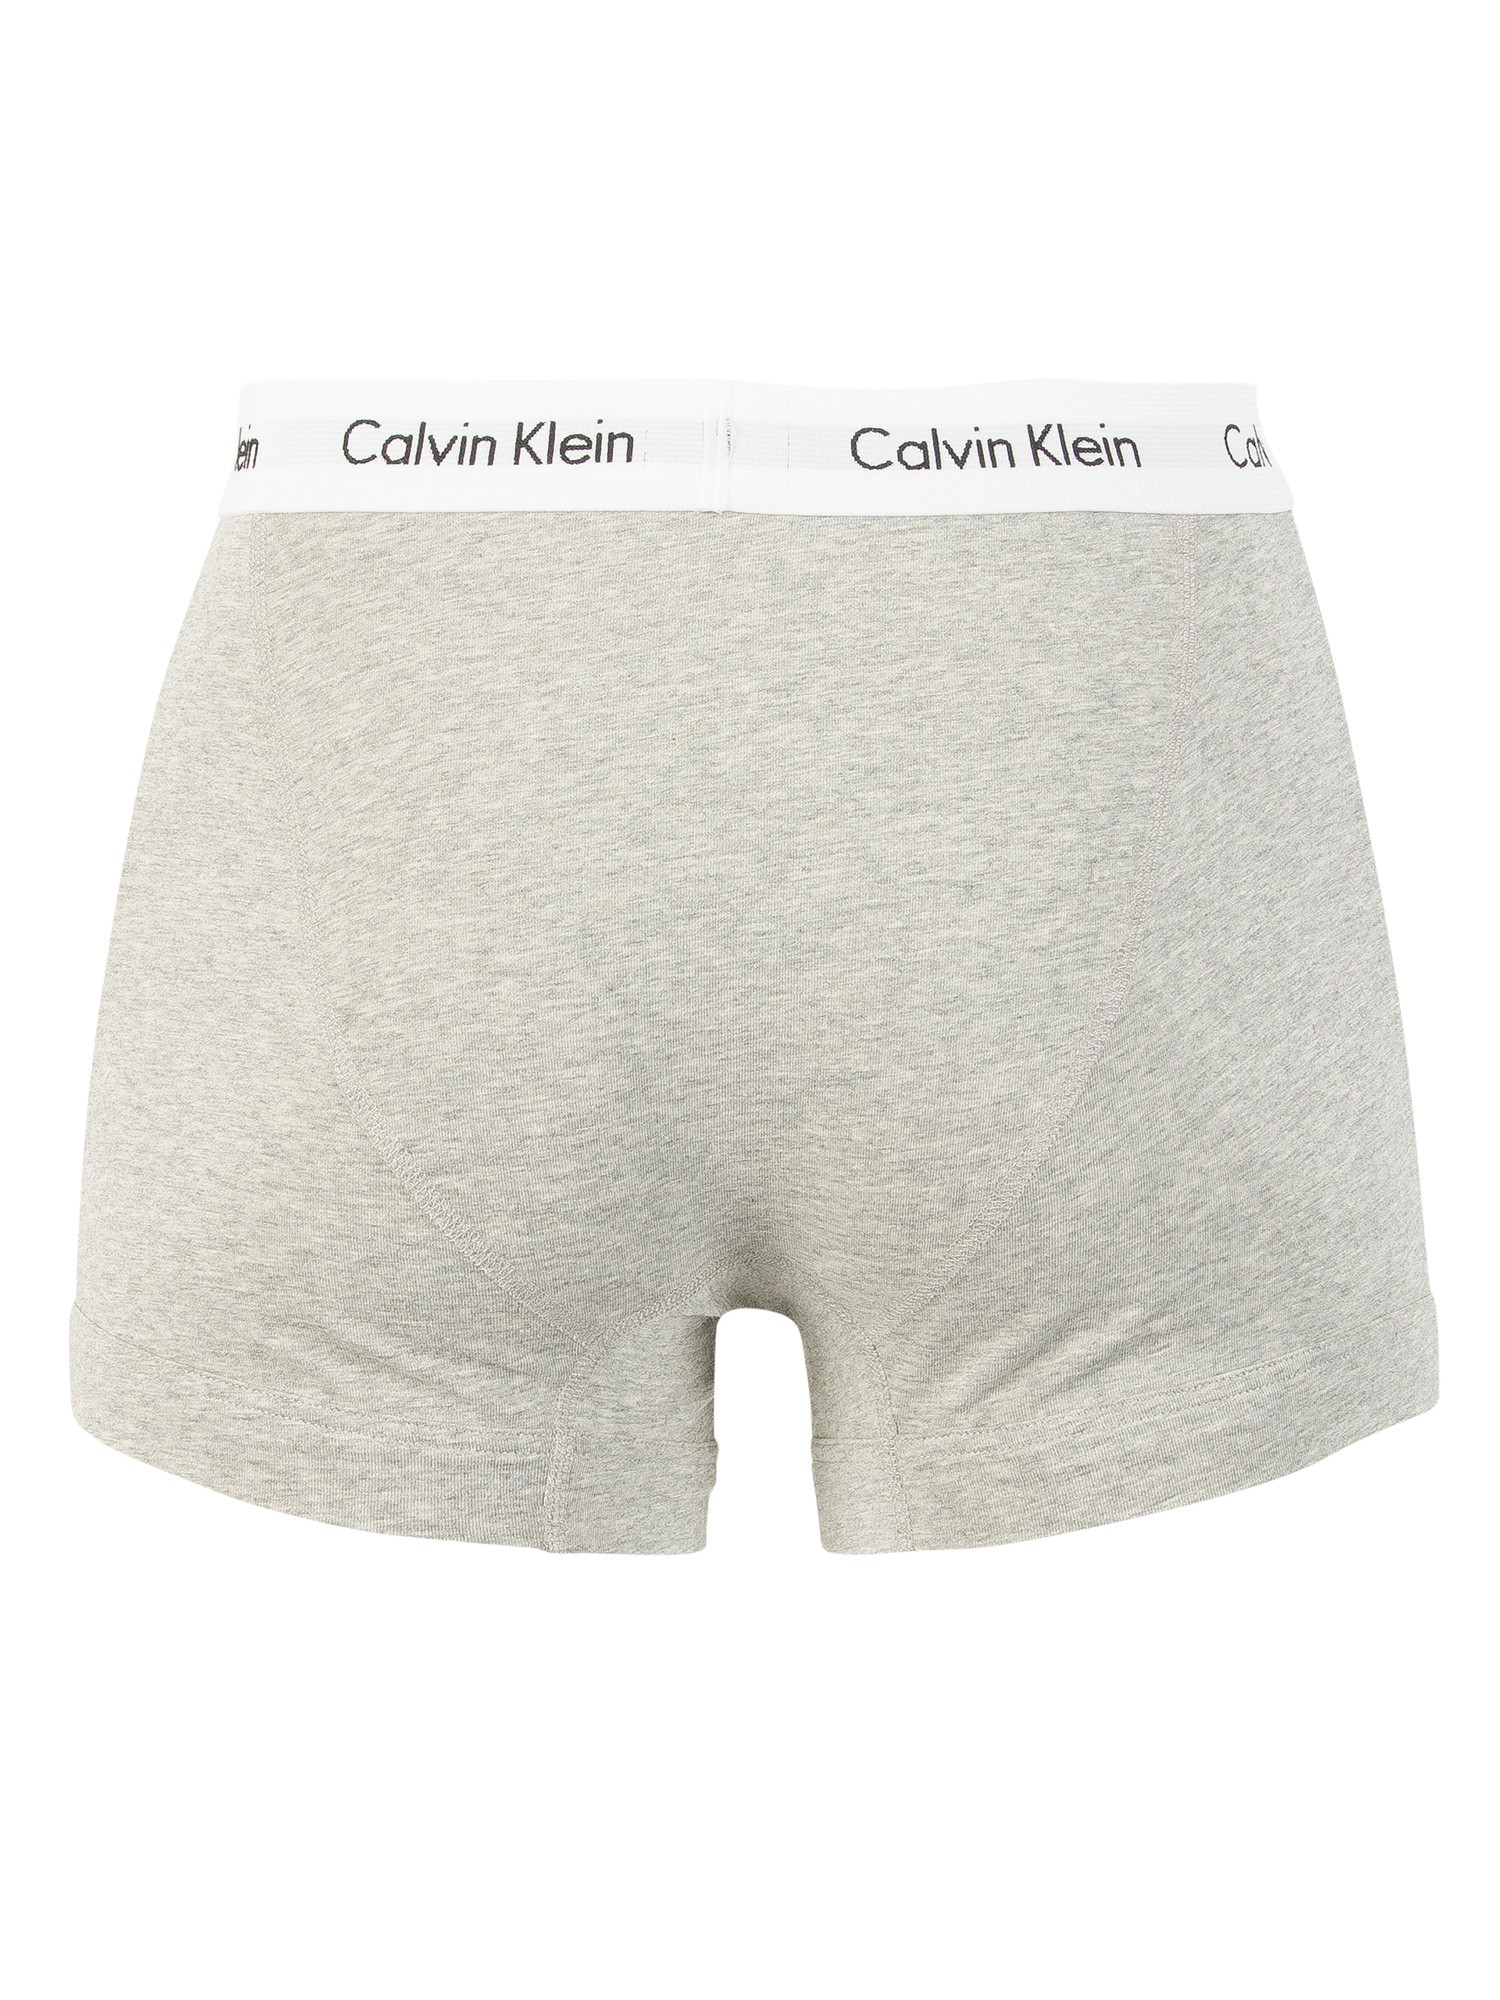 Calvin Klein Grey/White/Black 3 Pack Trunks